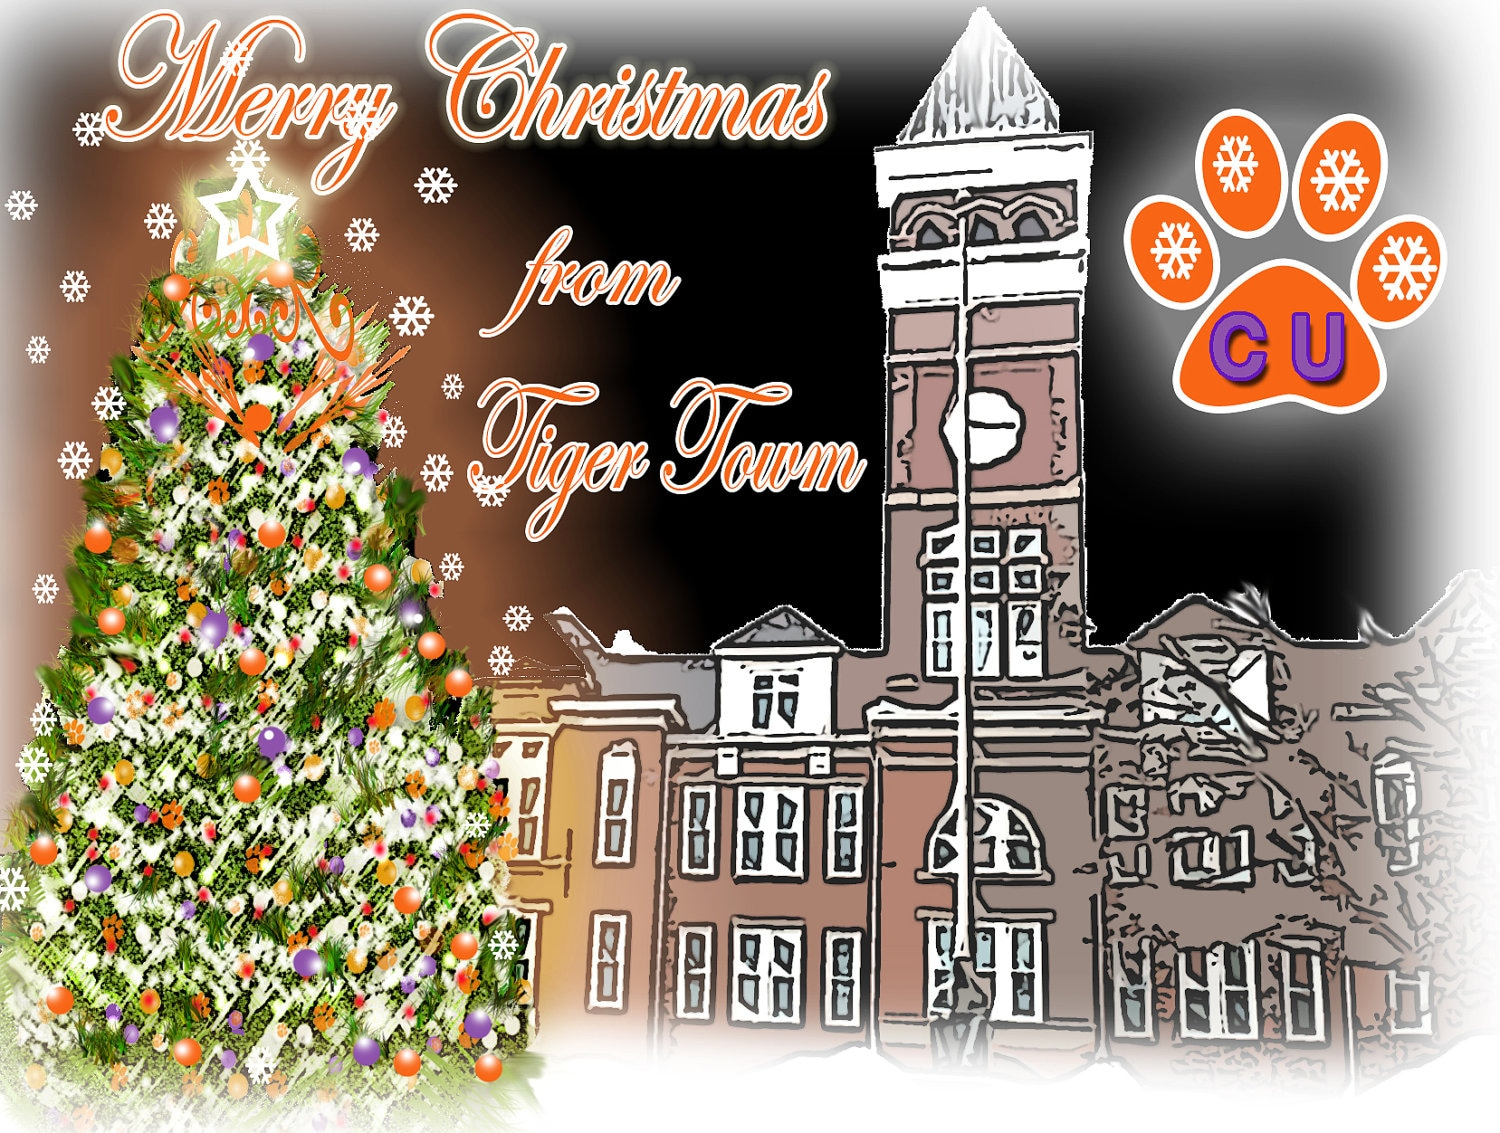 Clemson Christmas From Tiger Town By SonnyBuds On Etsy